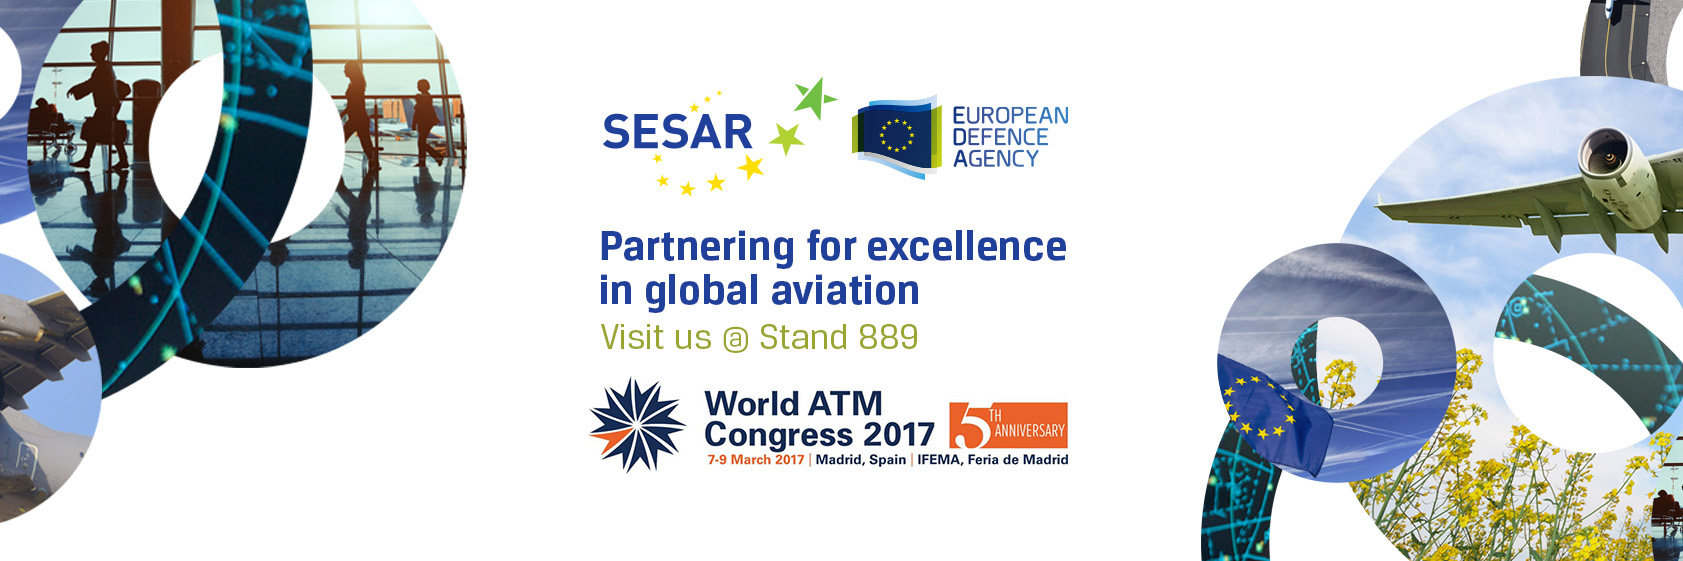 Meet the EDA team! Partnering for excellence in global aviation at the World ATM Congress (SESAR Stand 889)